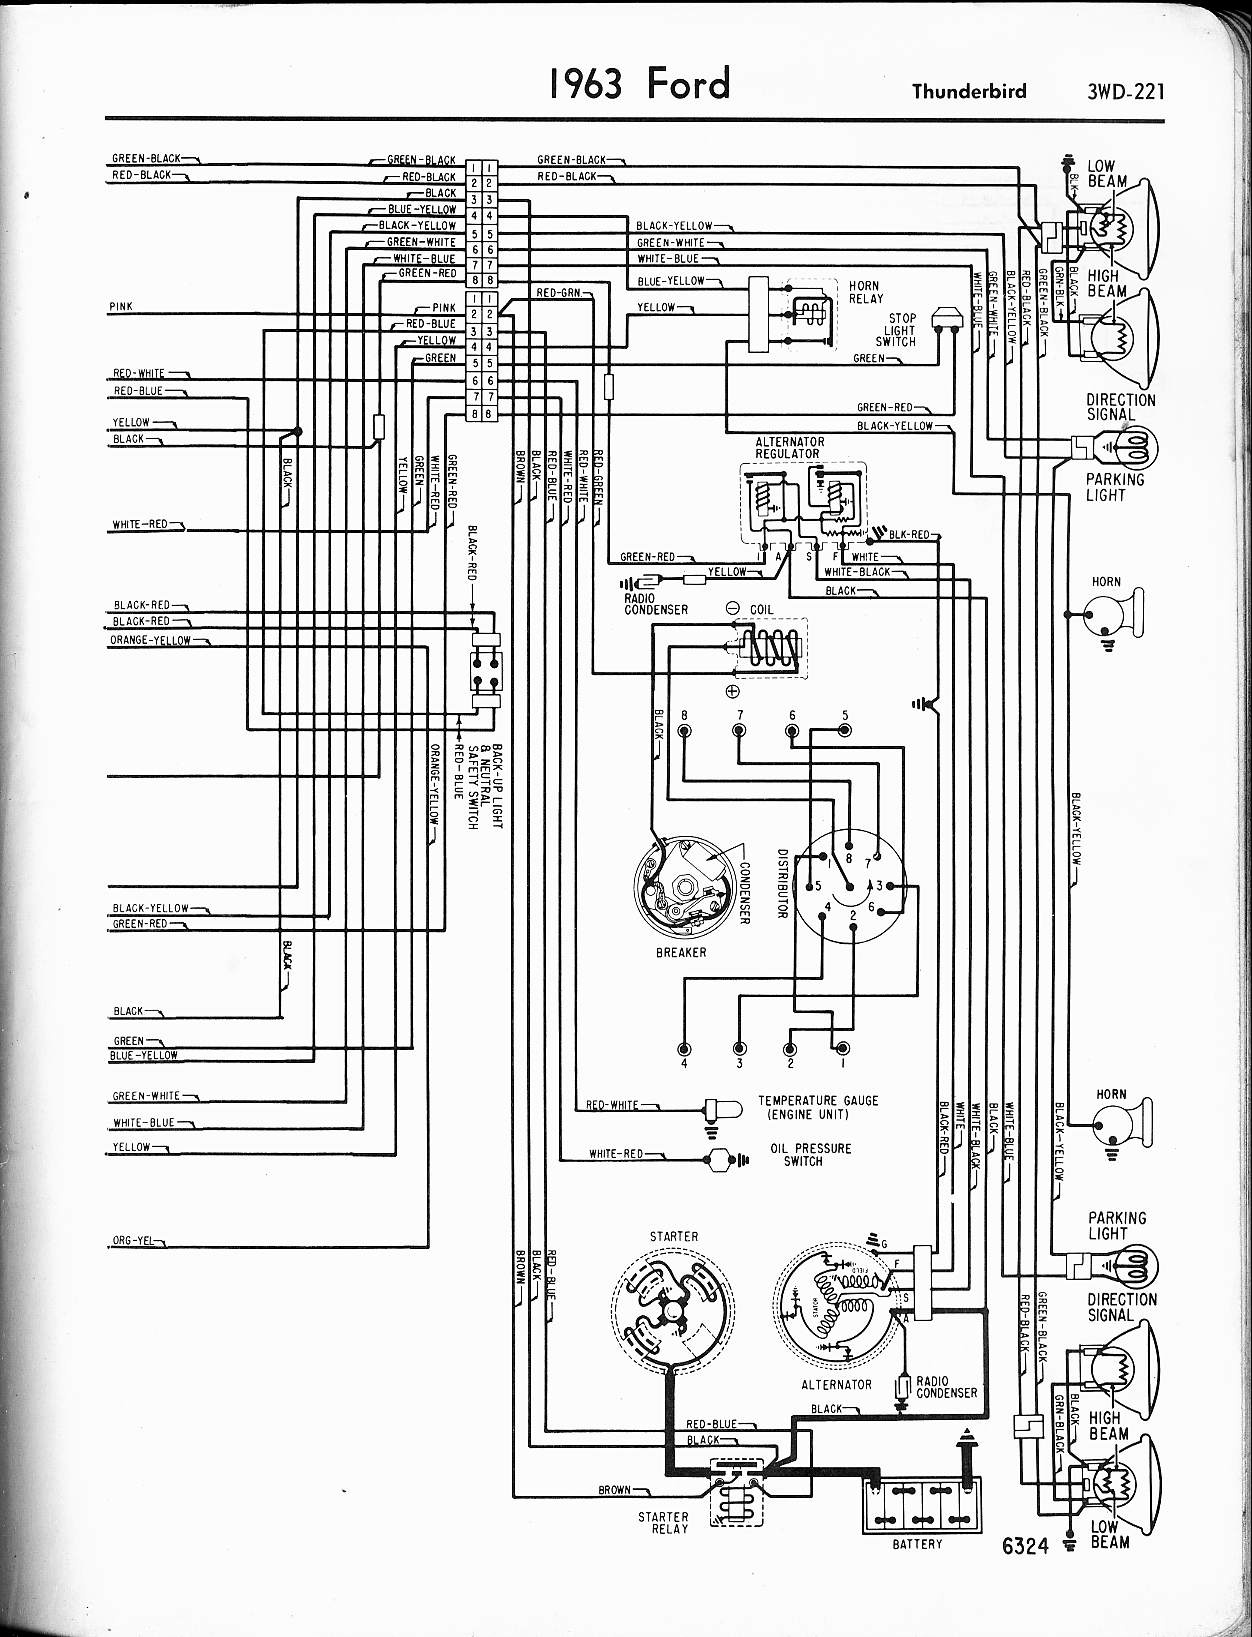 Windows Control Wiring Diagram Of 1965 Ford Thunderbird